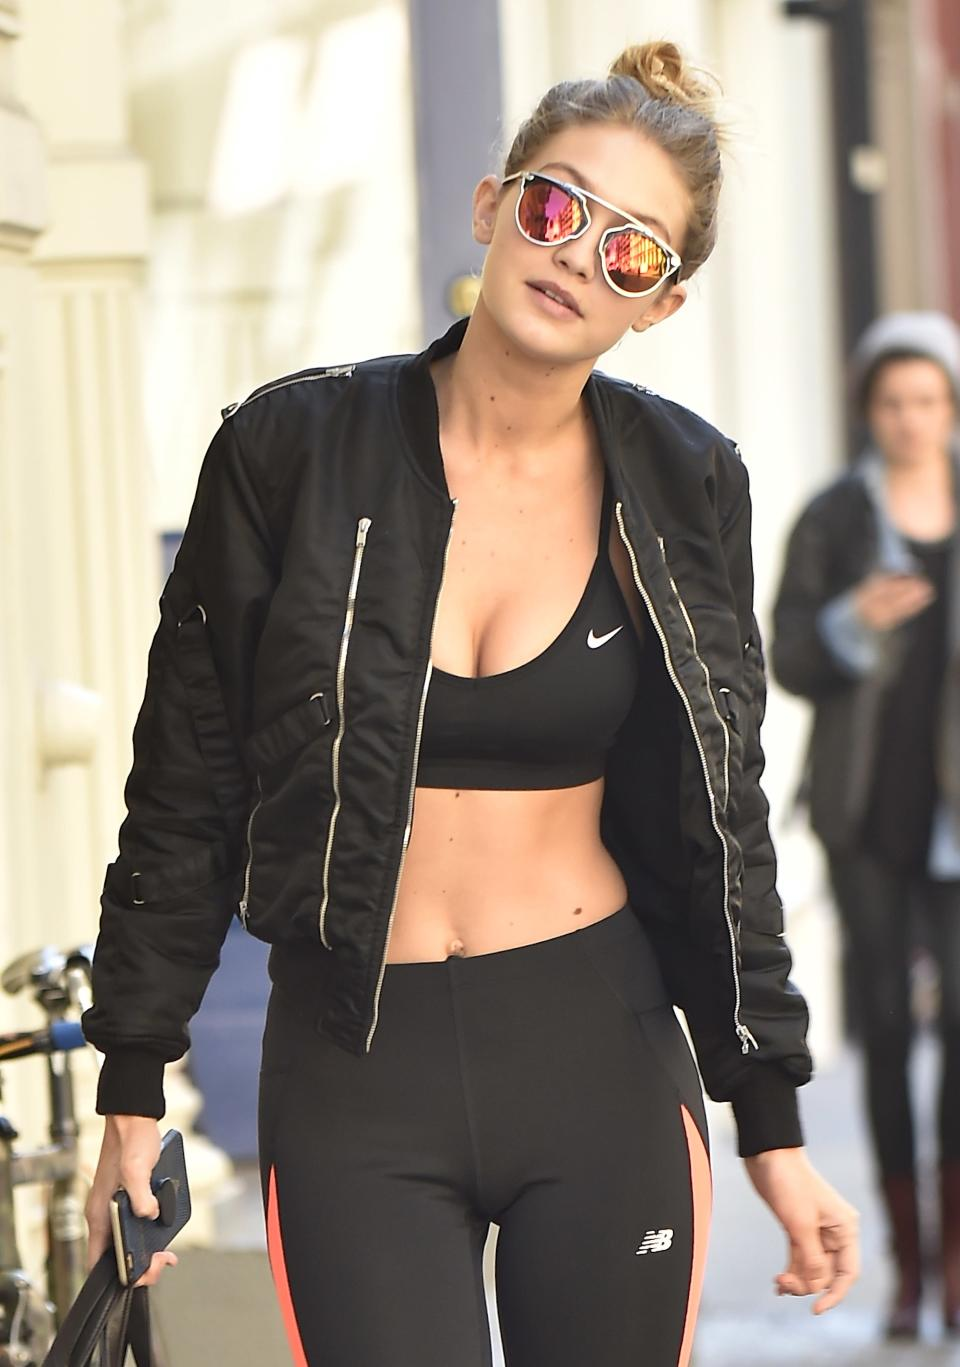 Of course she looks great in athleisure.